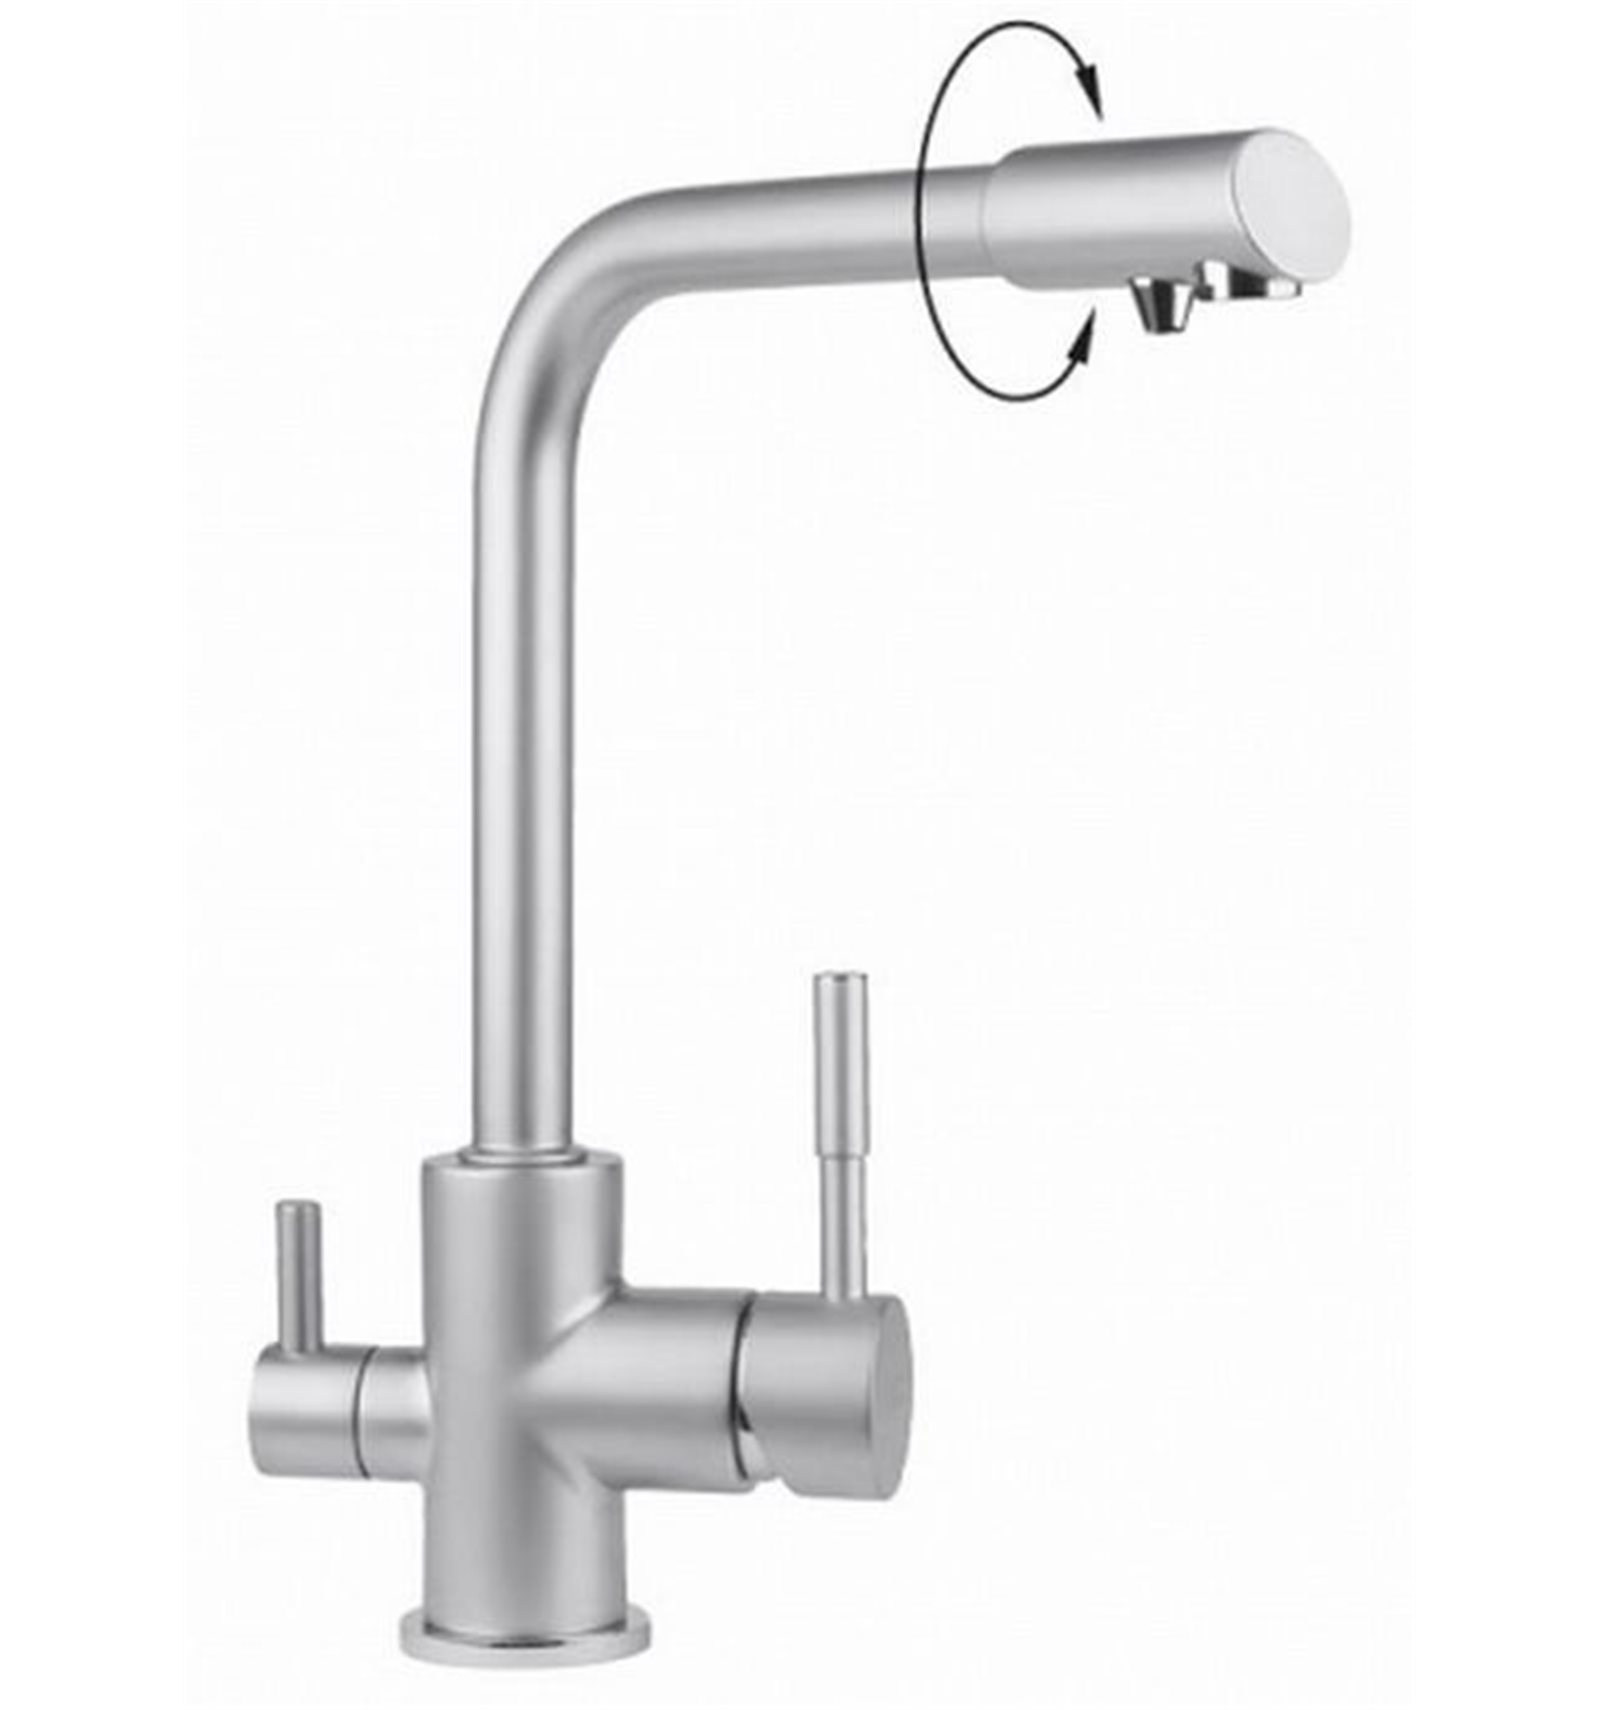 of unique new kitchen alfi filter kitchenzo com faucets solid brand stainless steel faucet drinking water sink